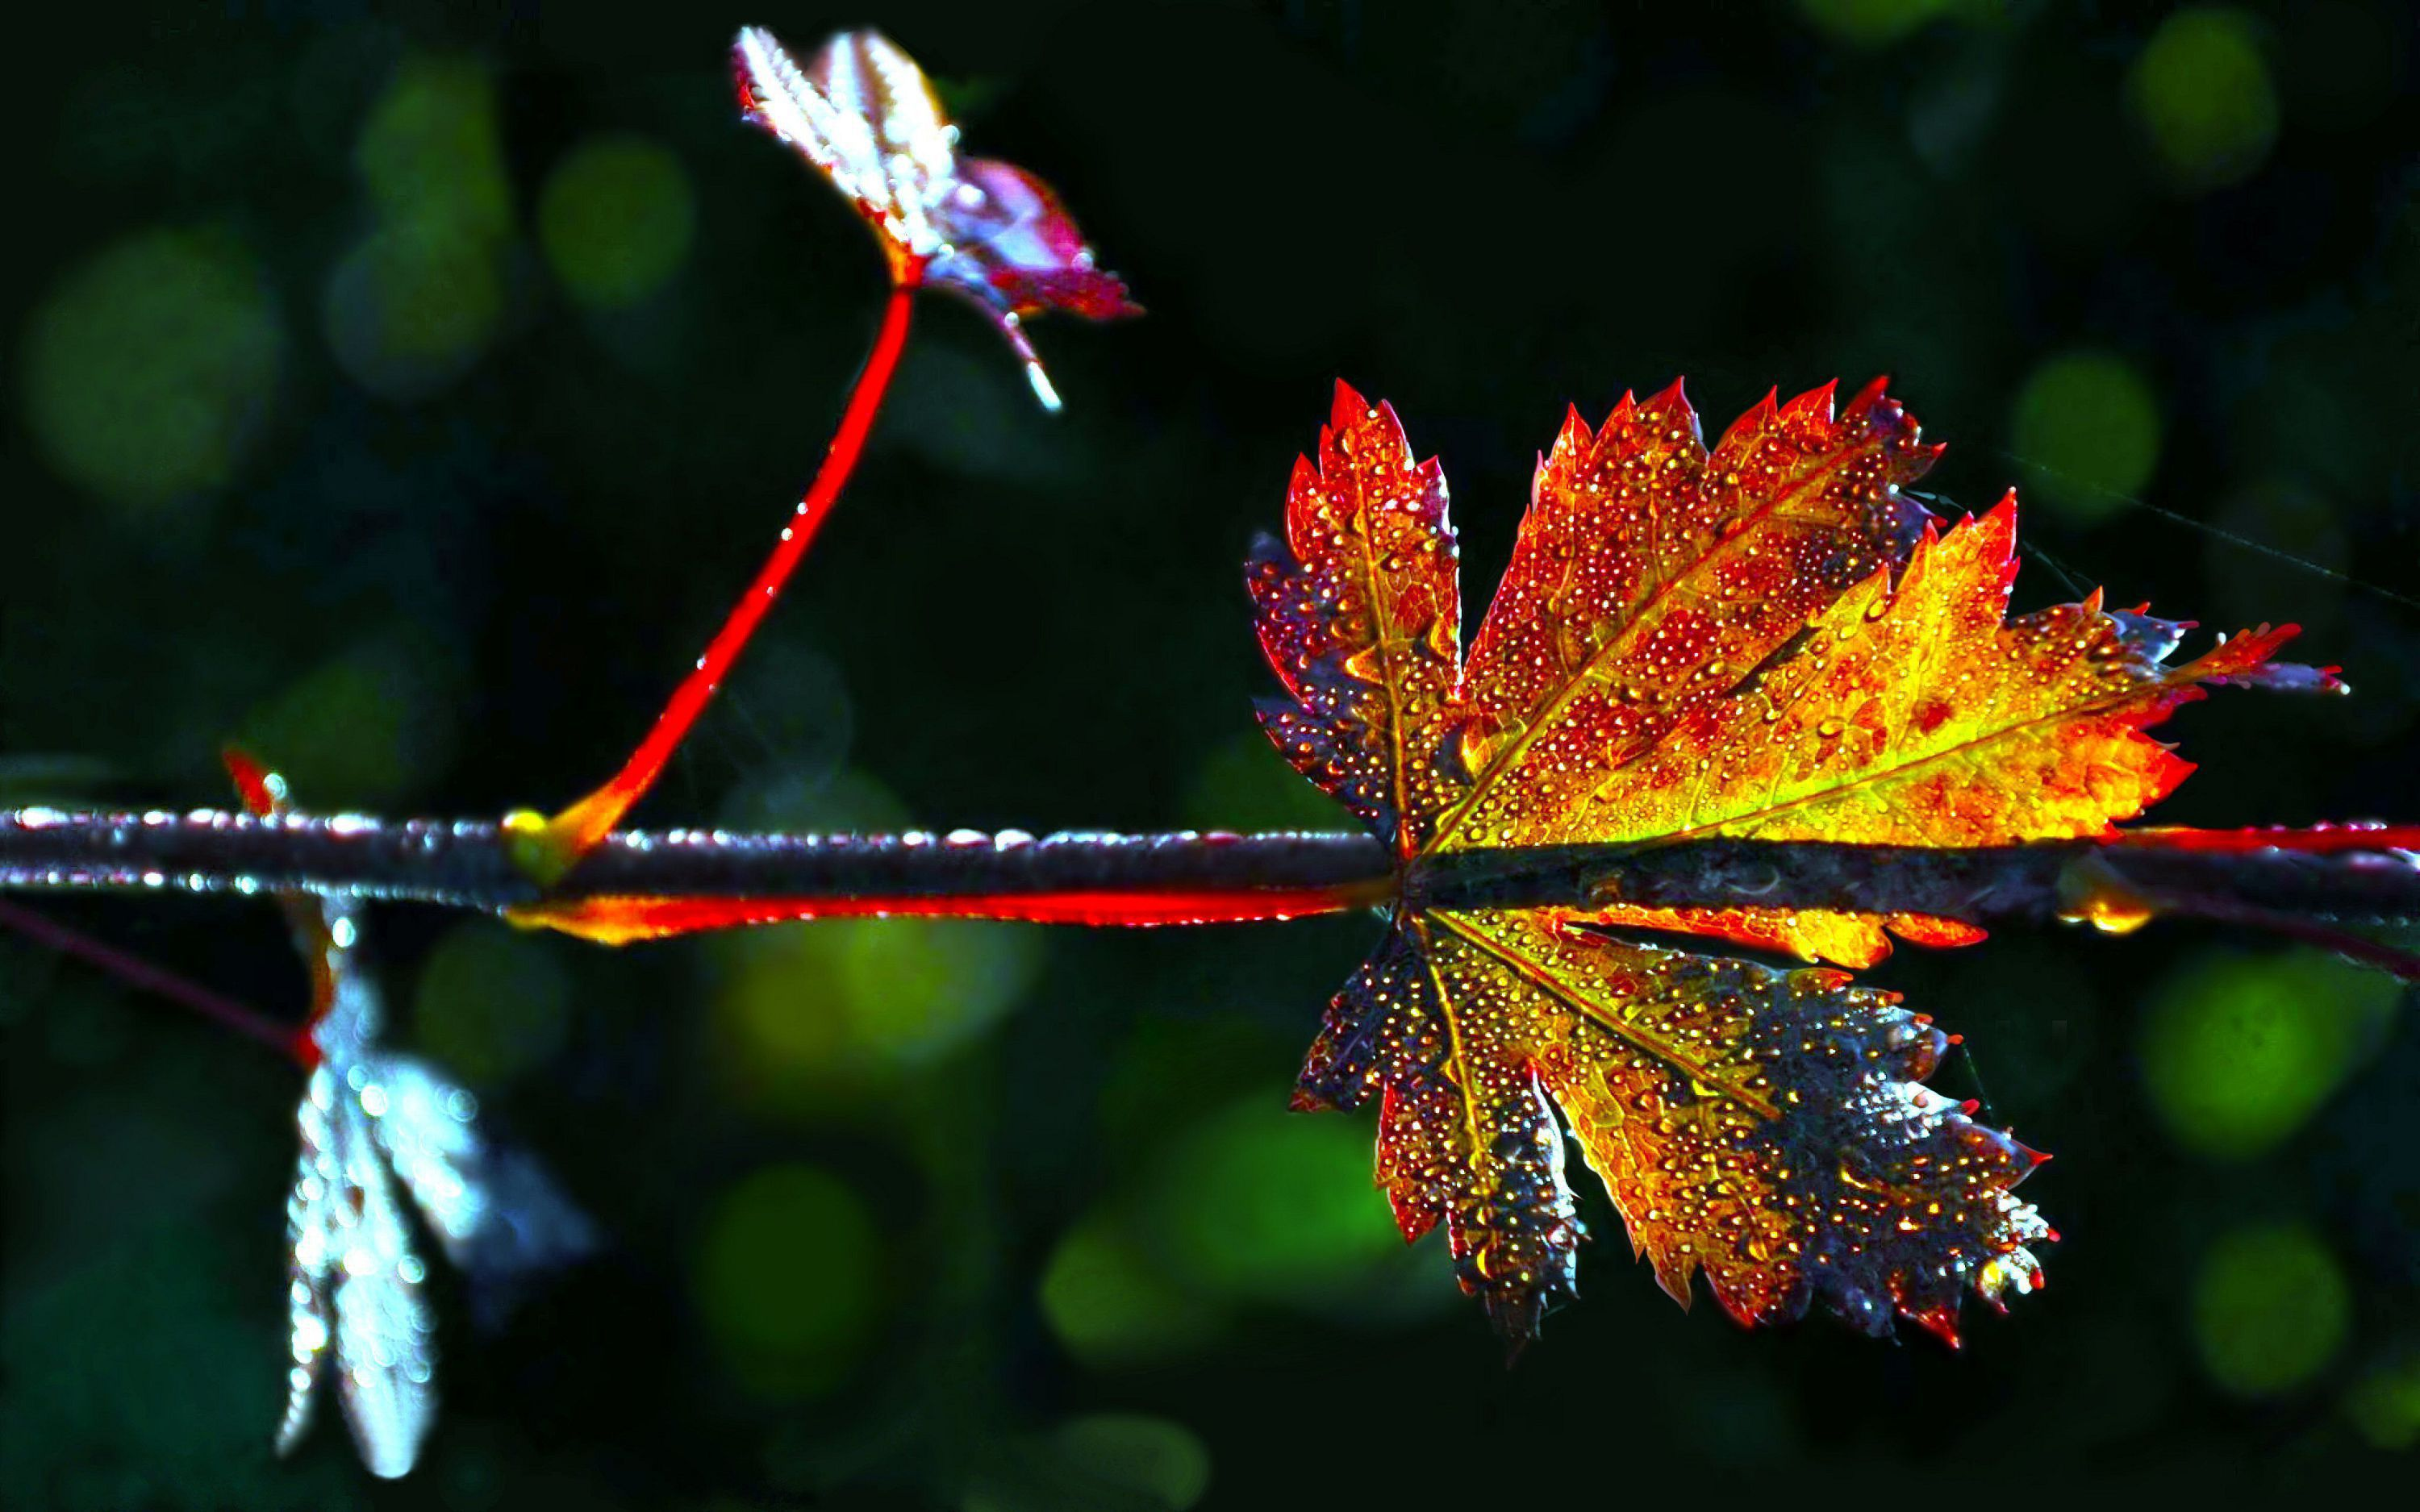 Autumn Leaves In High Resolution